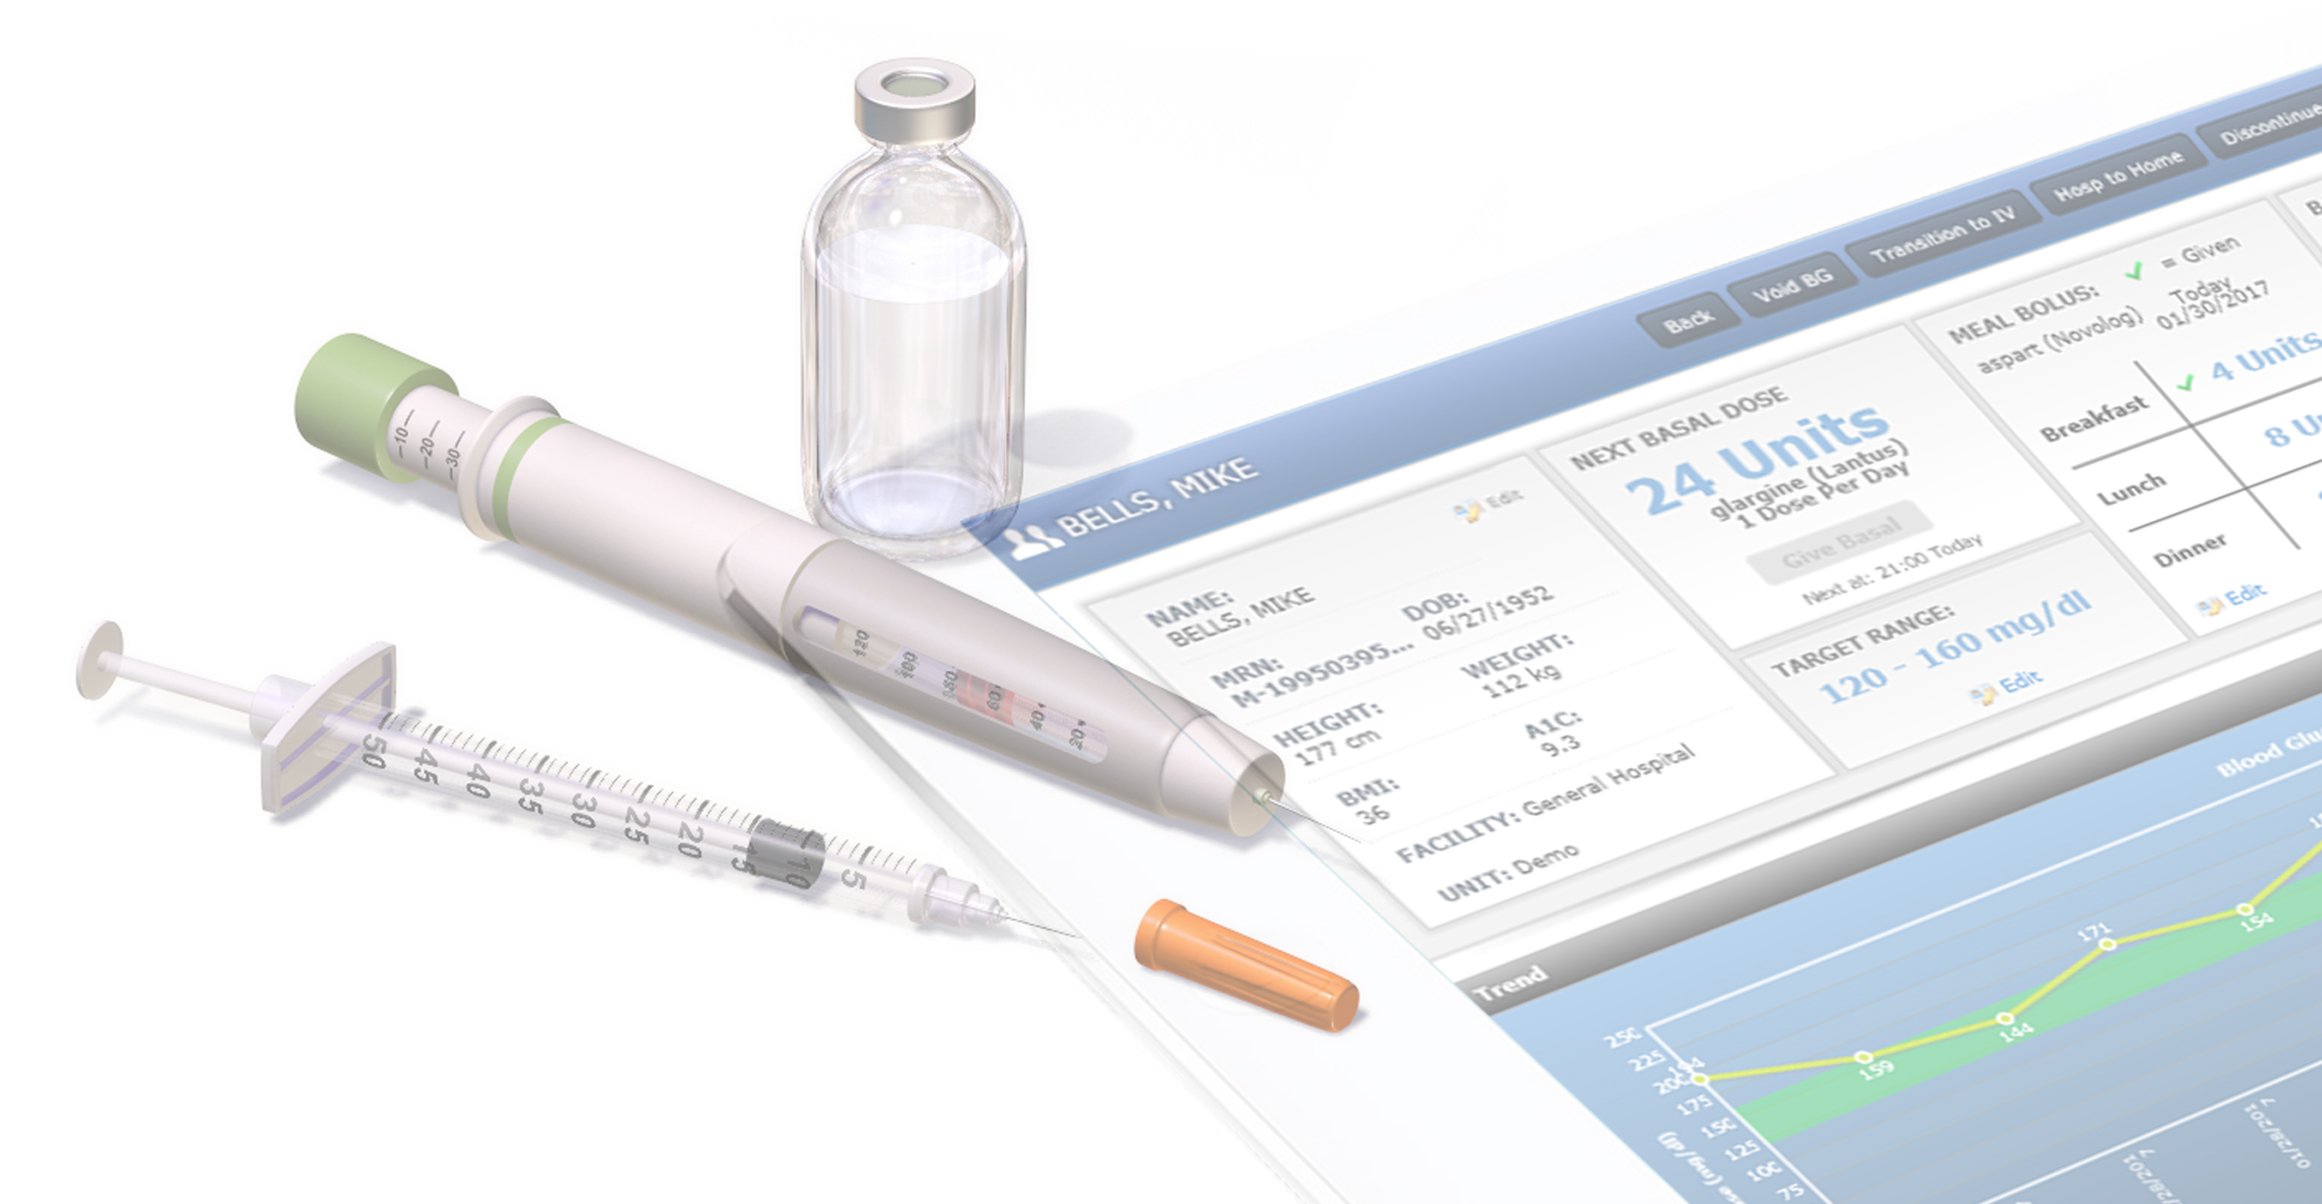 eGlycemic Management System® from Glytec is proven to reduce risks and costs of acute and chronic care therapies for patients with diabetes. (Photo: Business Wire)